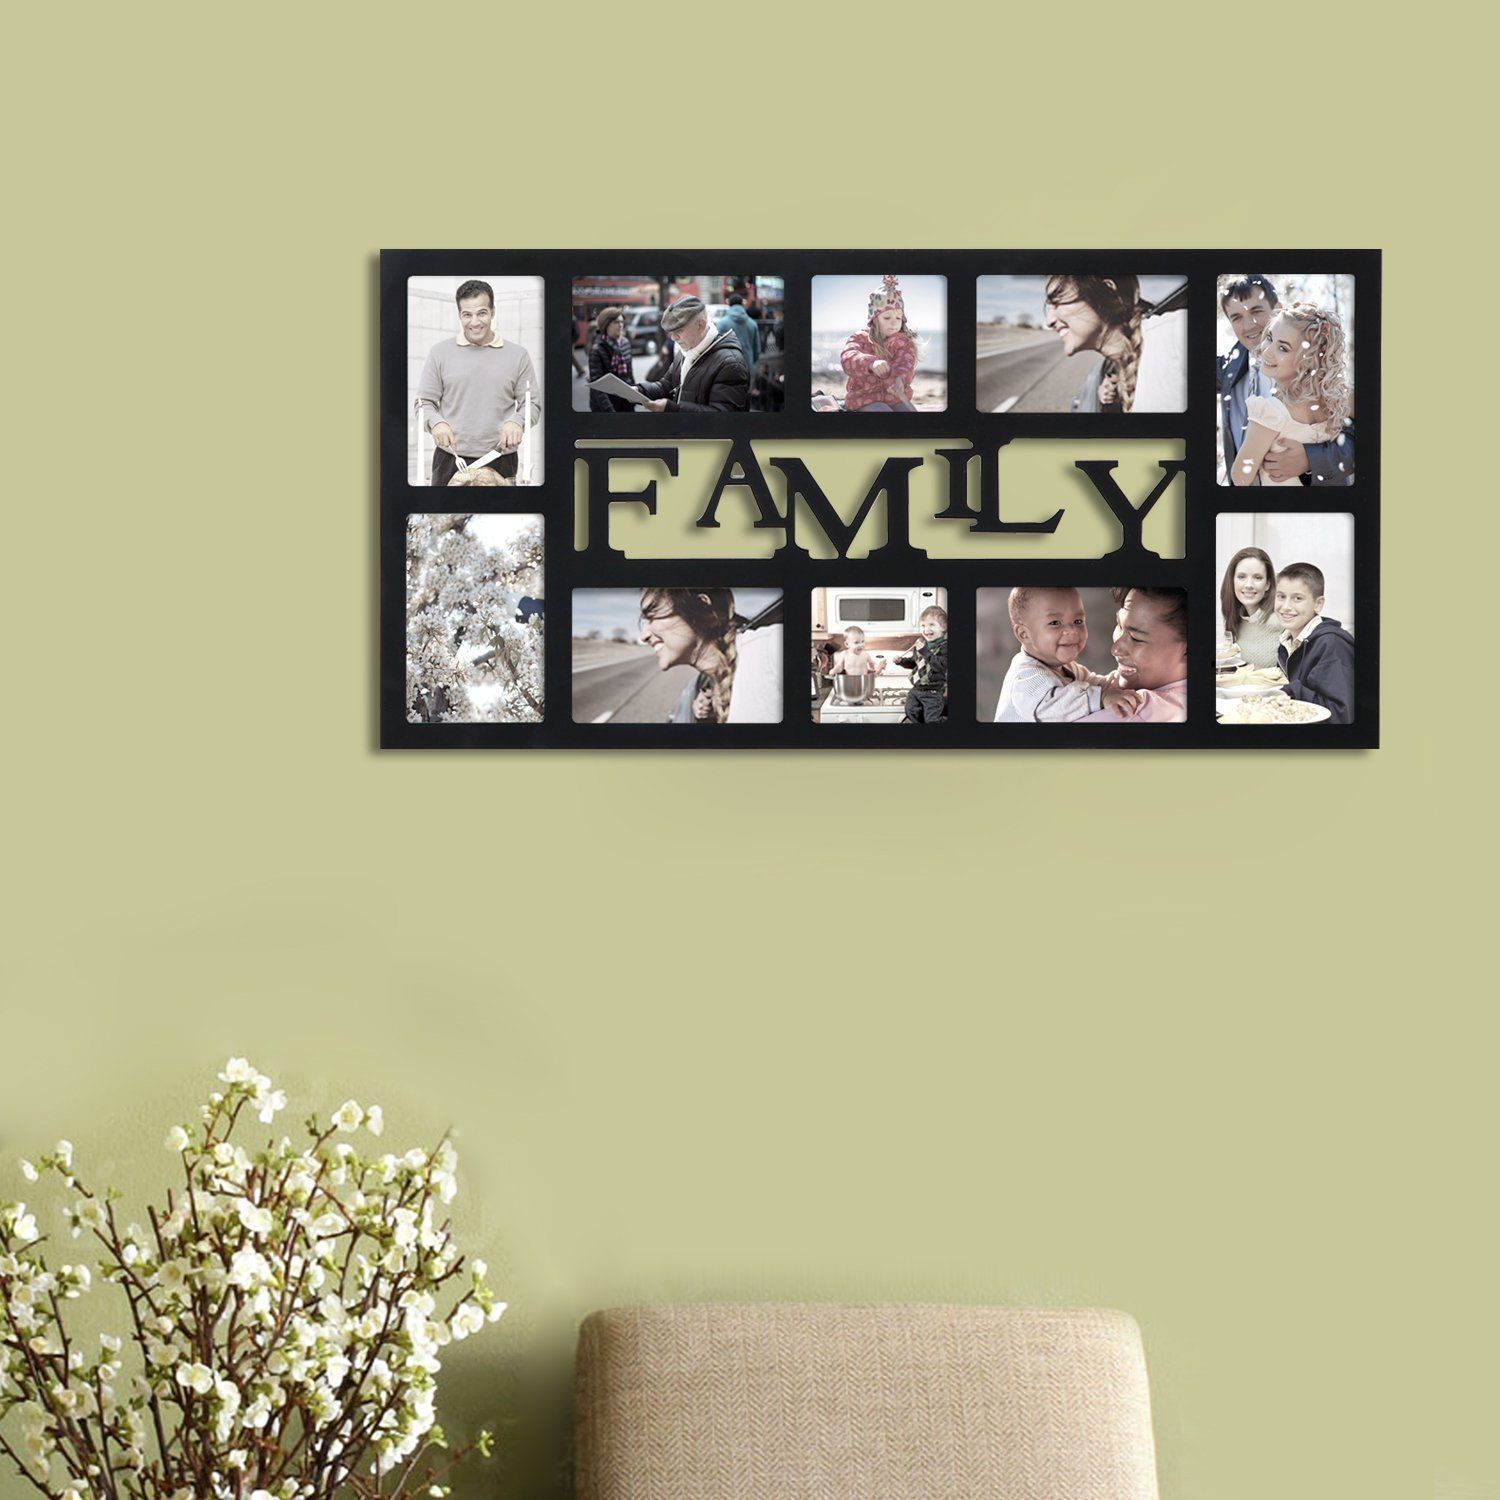 Adeco Family Black Wood 10 Opening Decorative Wall Hanging Collage Photo Frame Black Size Hanging Wall Decor Picture Frames Holiday Photo Frames